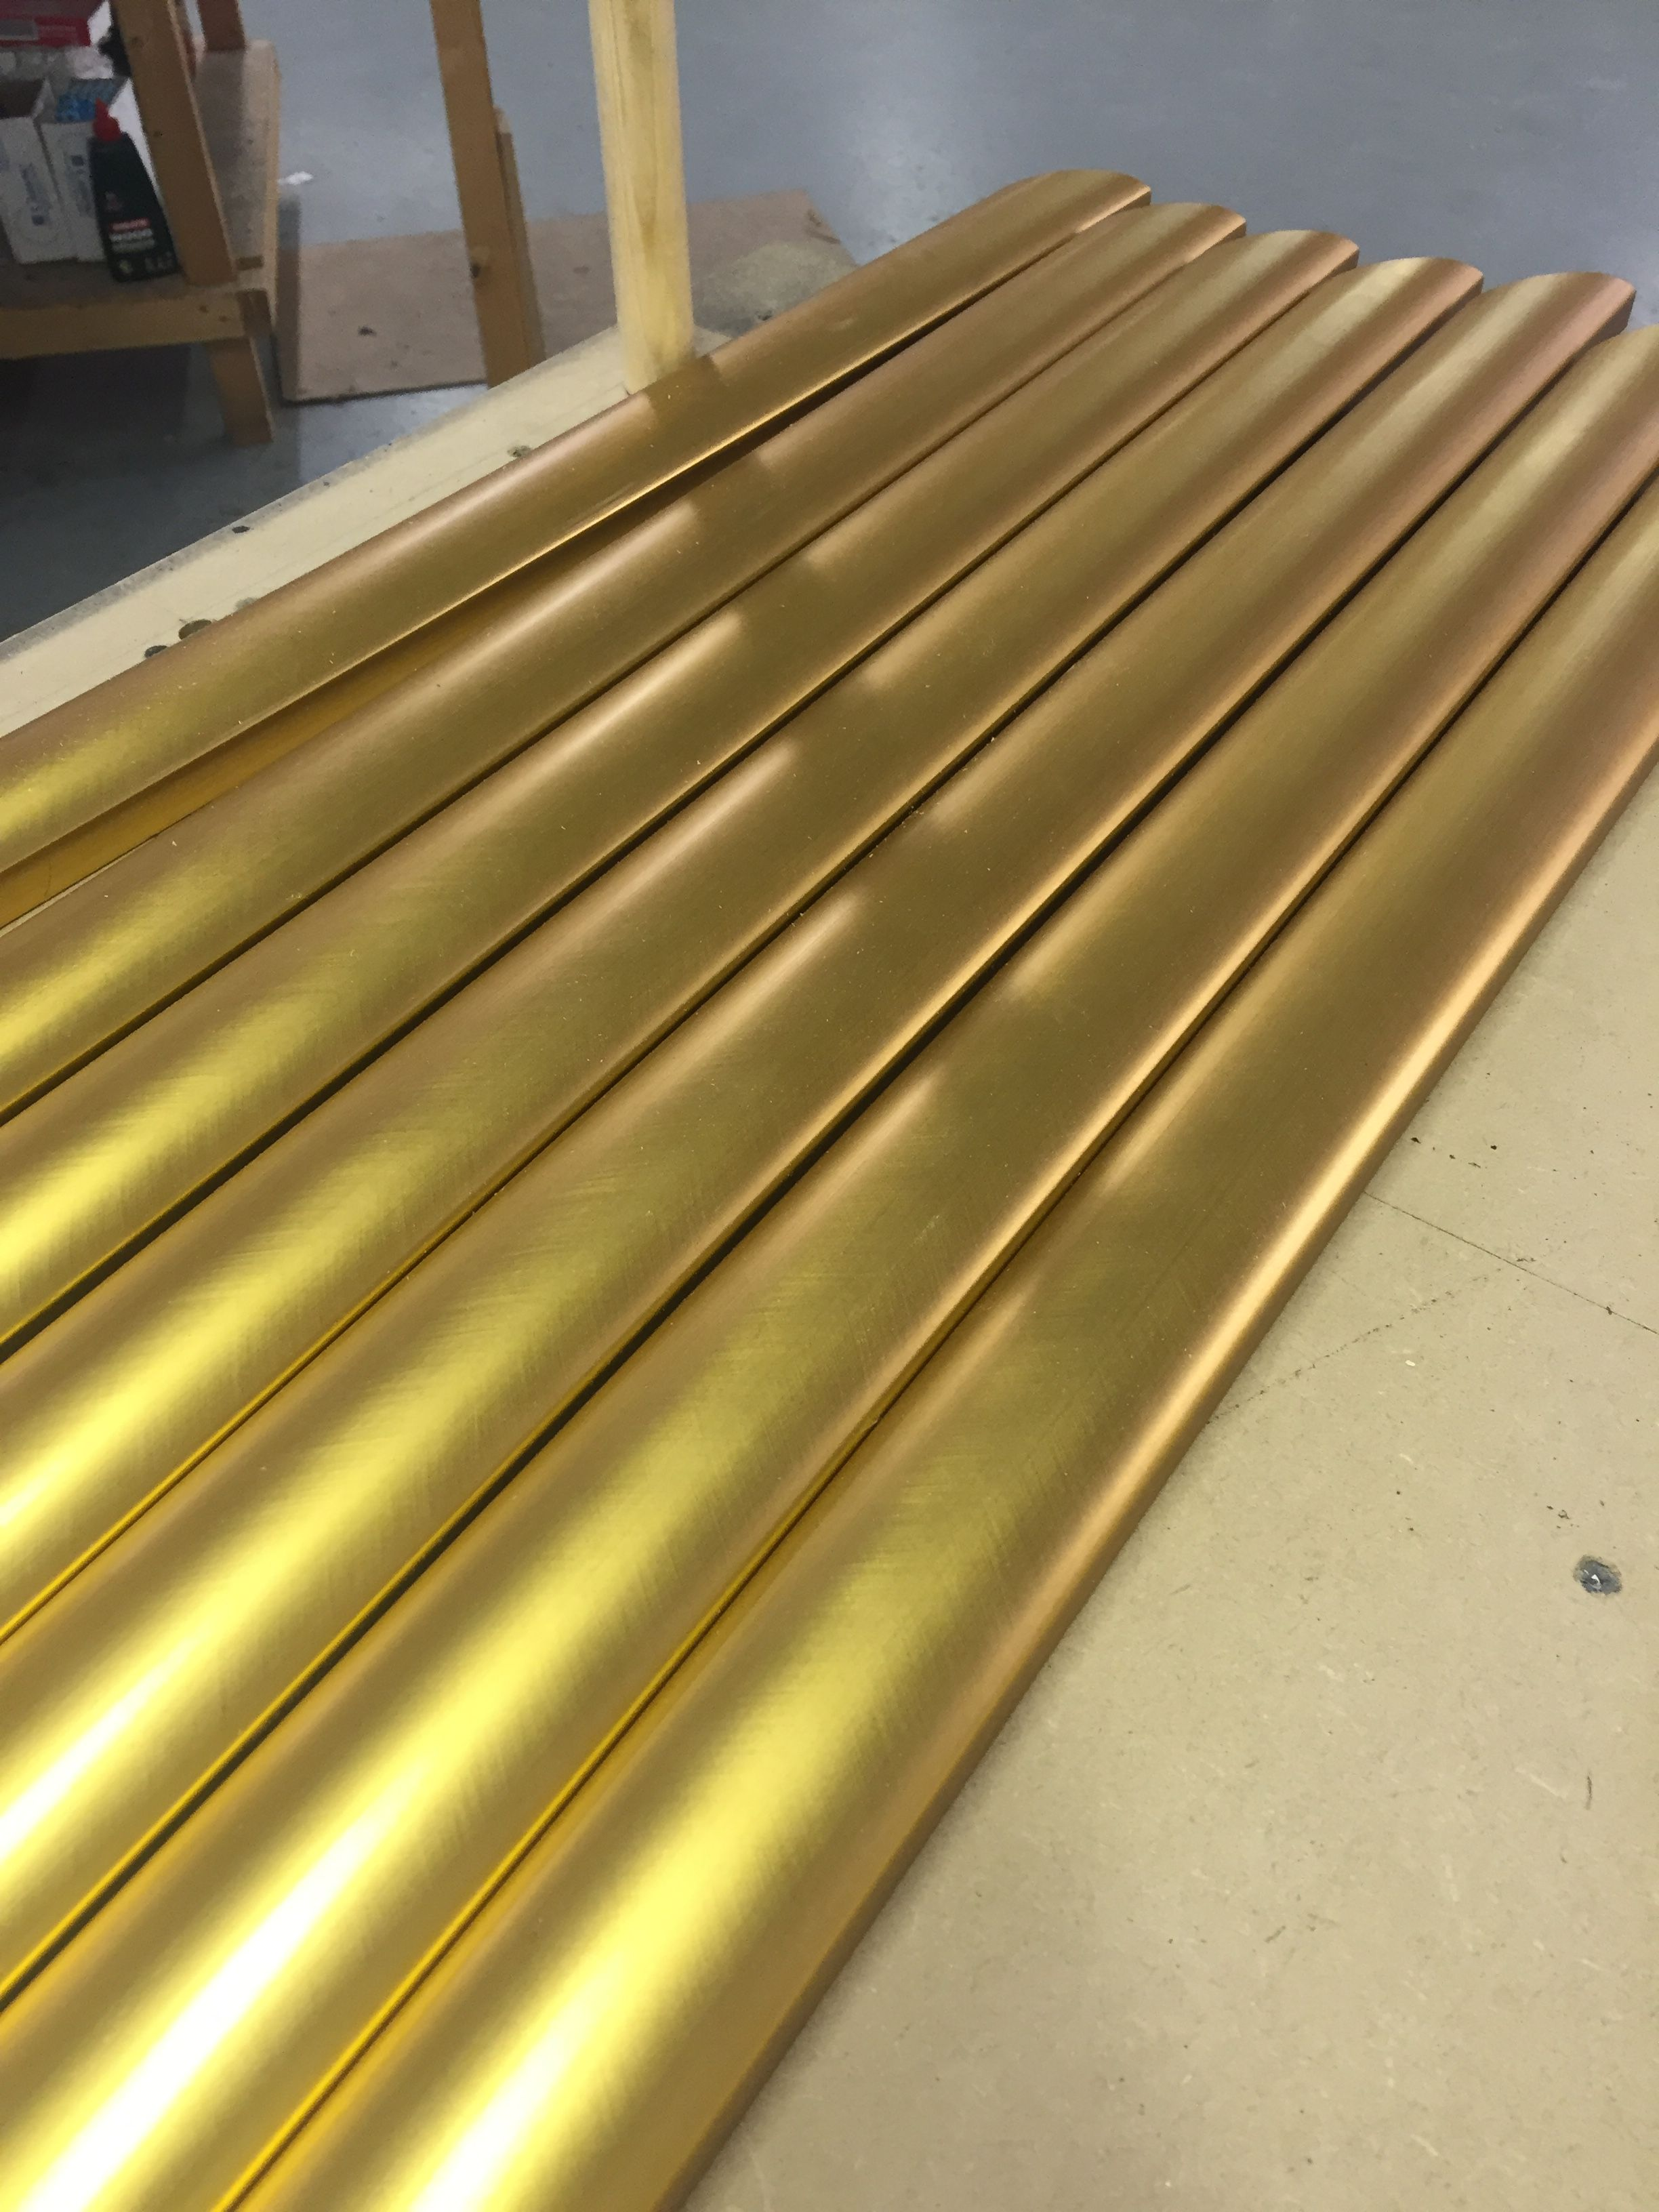 We are making frames with this gold finish wood today! Very bling ...